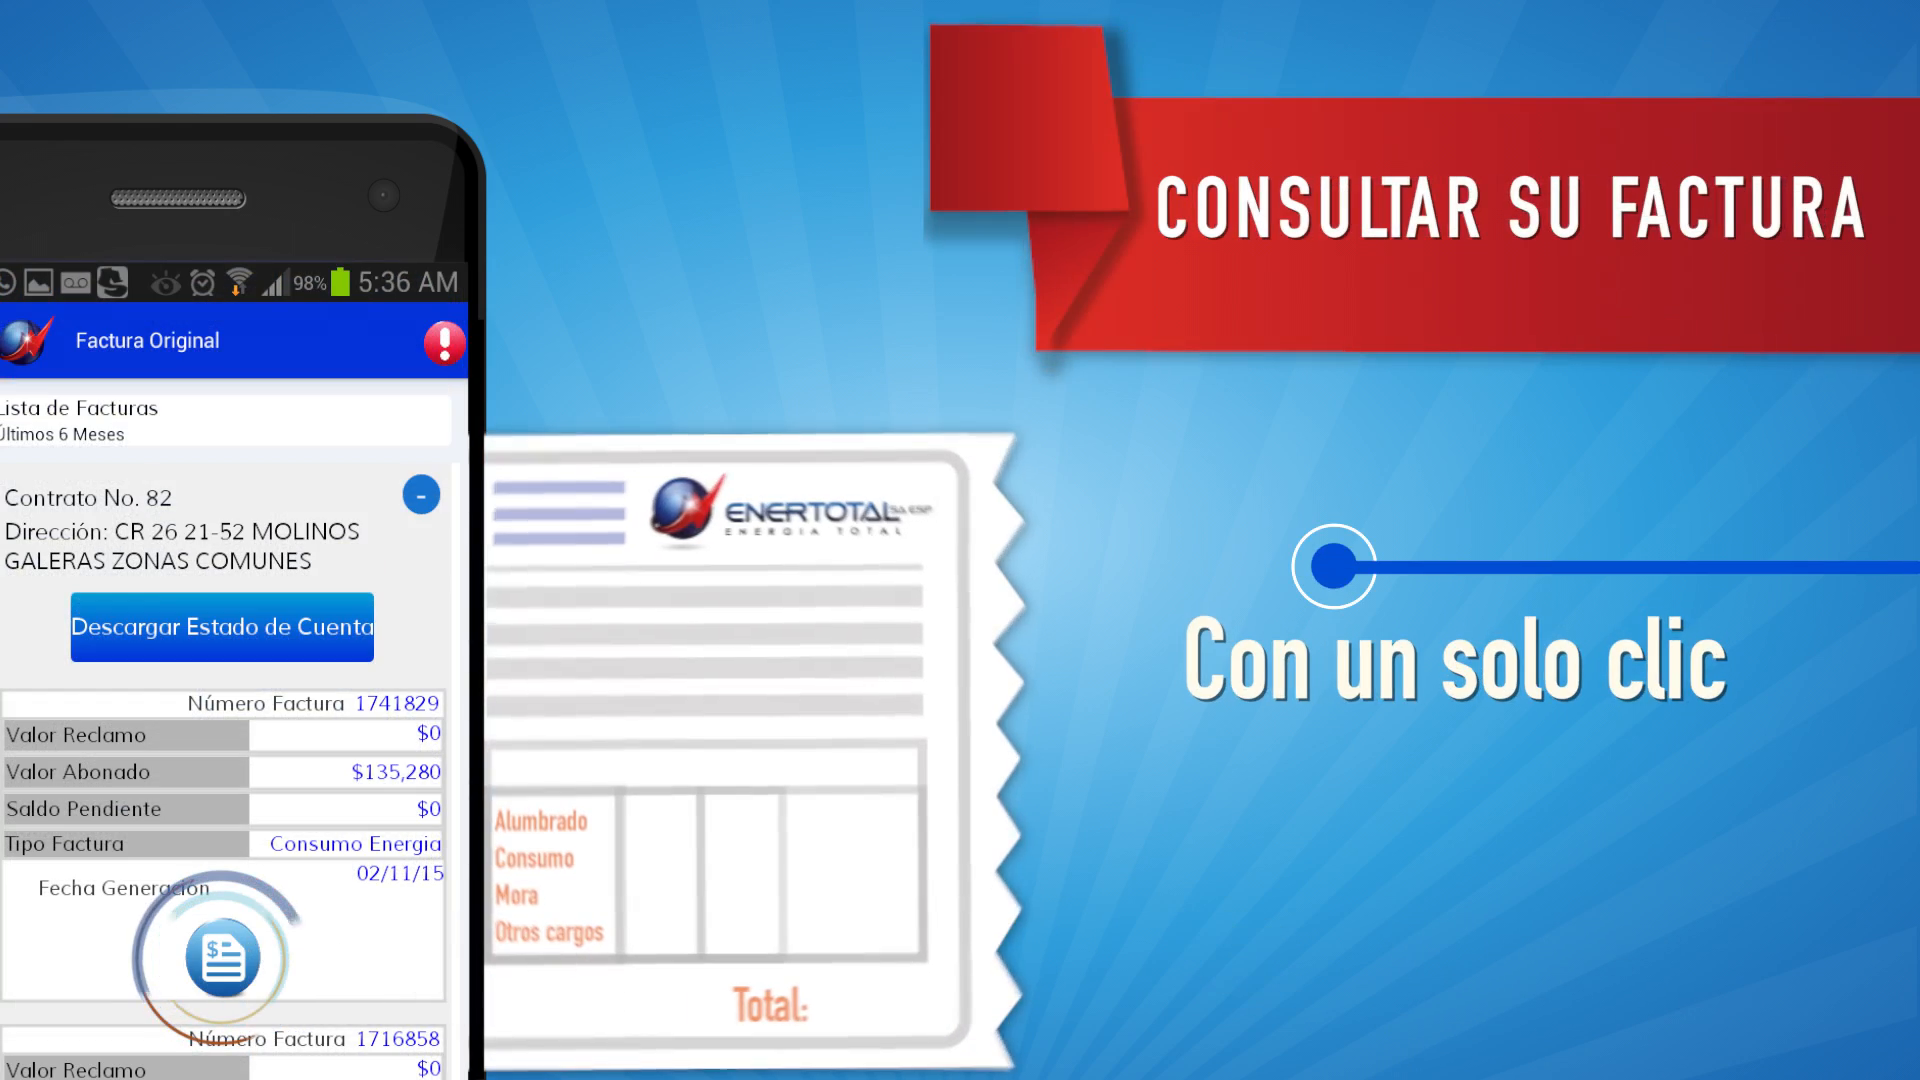 Video Corporativo / Desarrollado por IconExpress